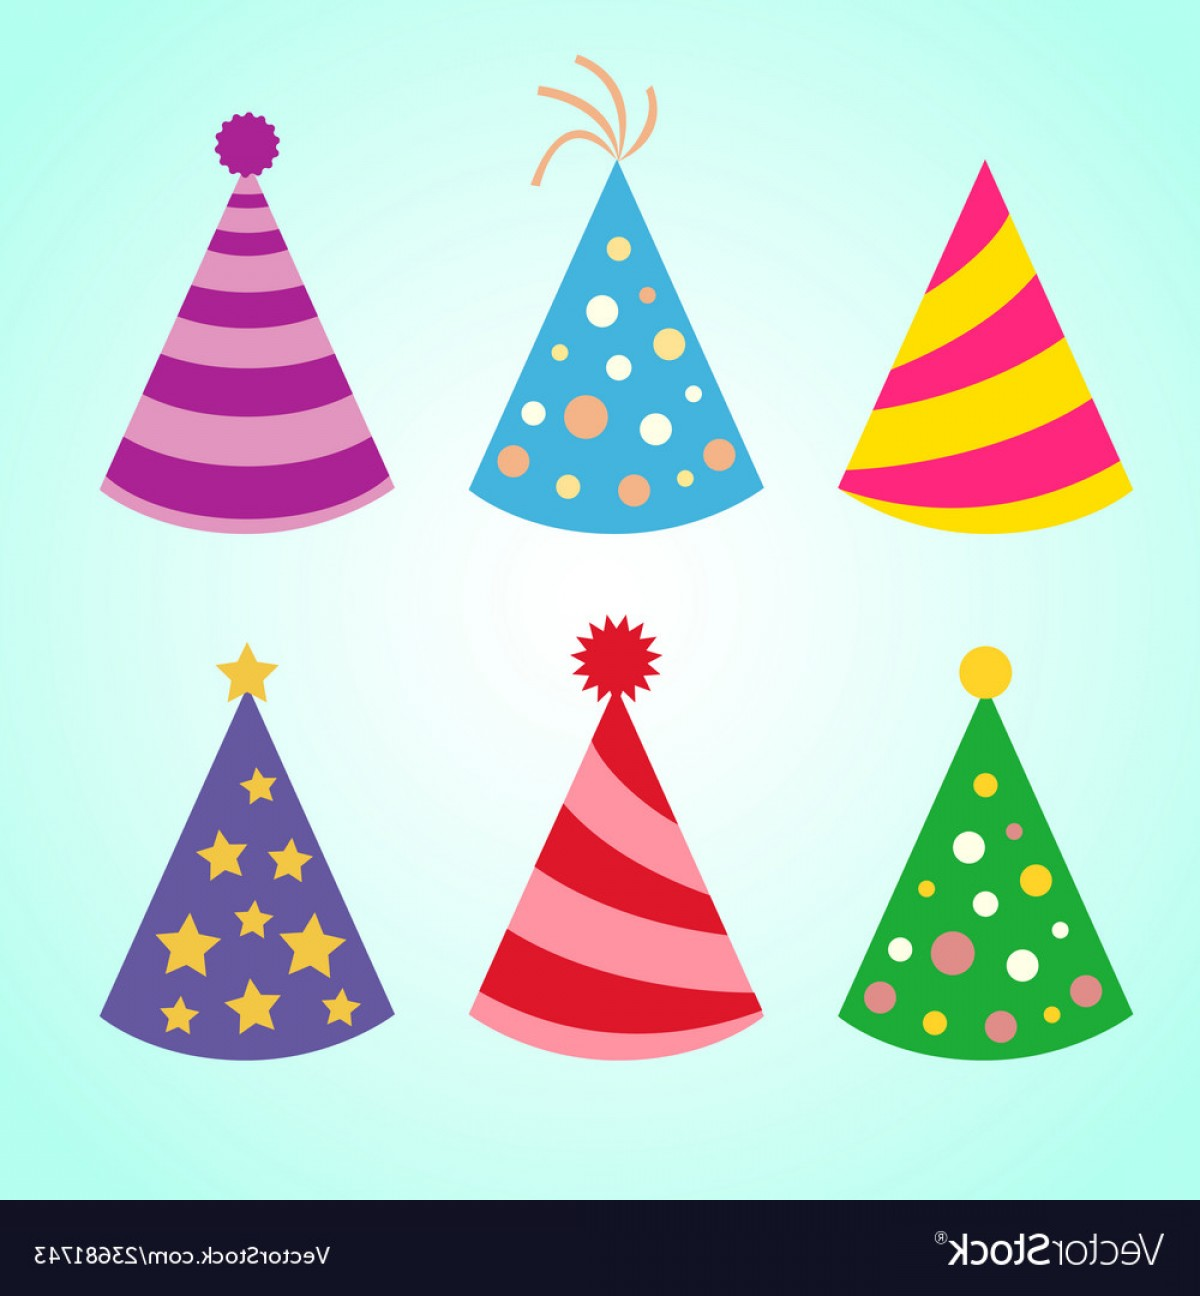 Teal Birthday Hat Vector: Celebration Set Of Colorful Birthday Party Hats Vector